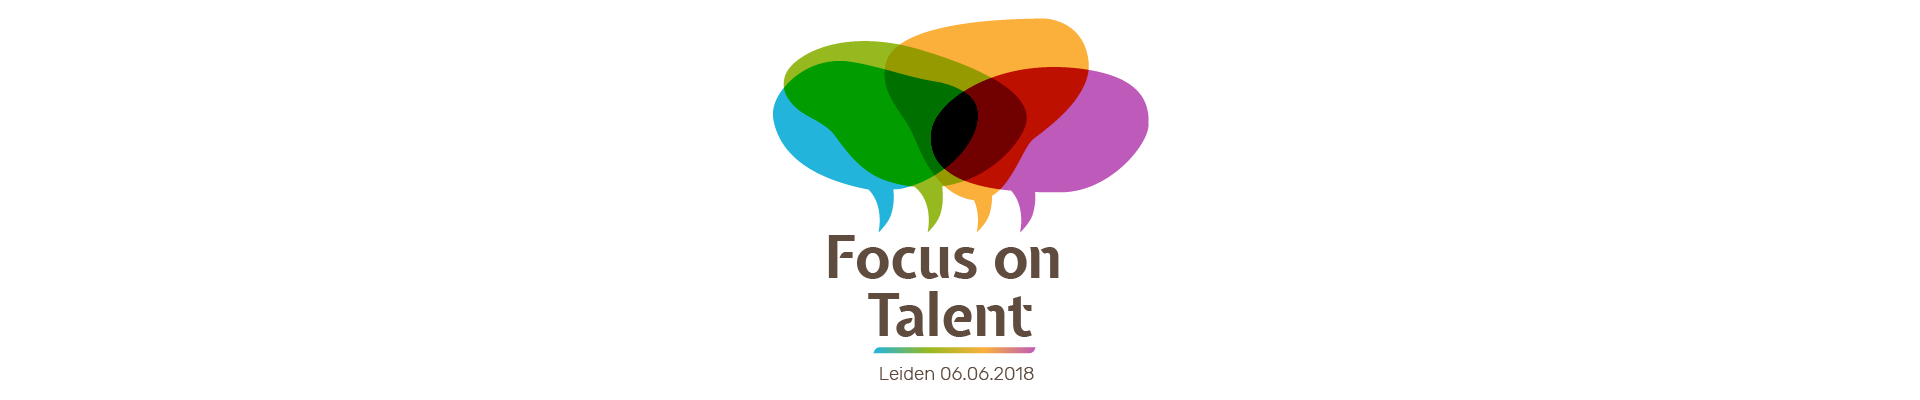 Focus on talent (engels)